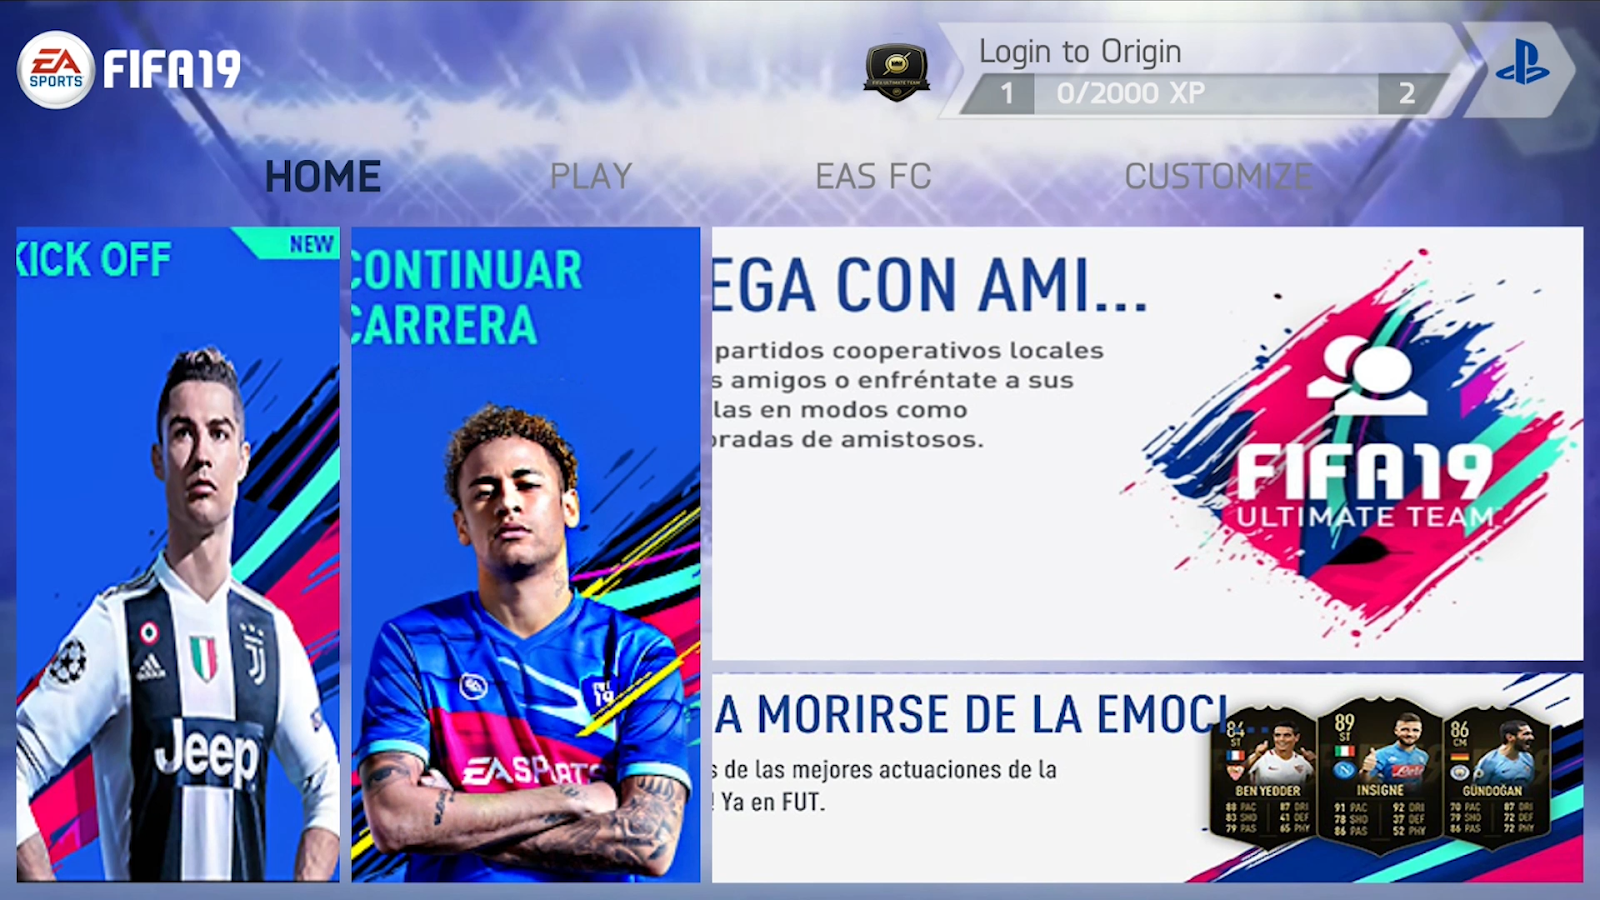 FIFA 19 MOD FIFA 14 Android Offline 1GB New Menu Face Kits 2020 & Transfers Update Best Graphics